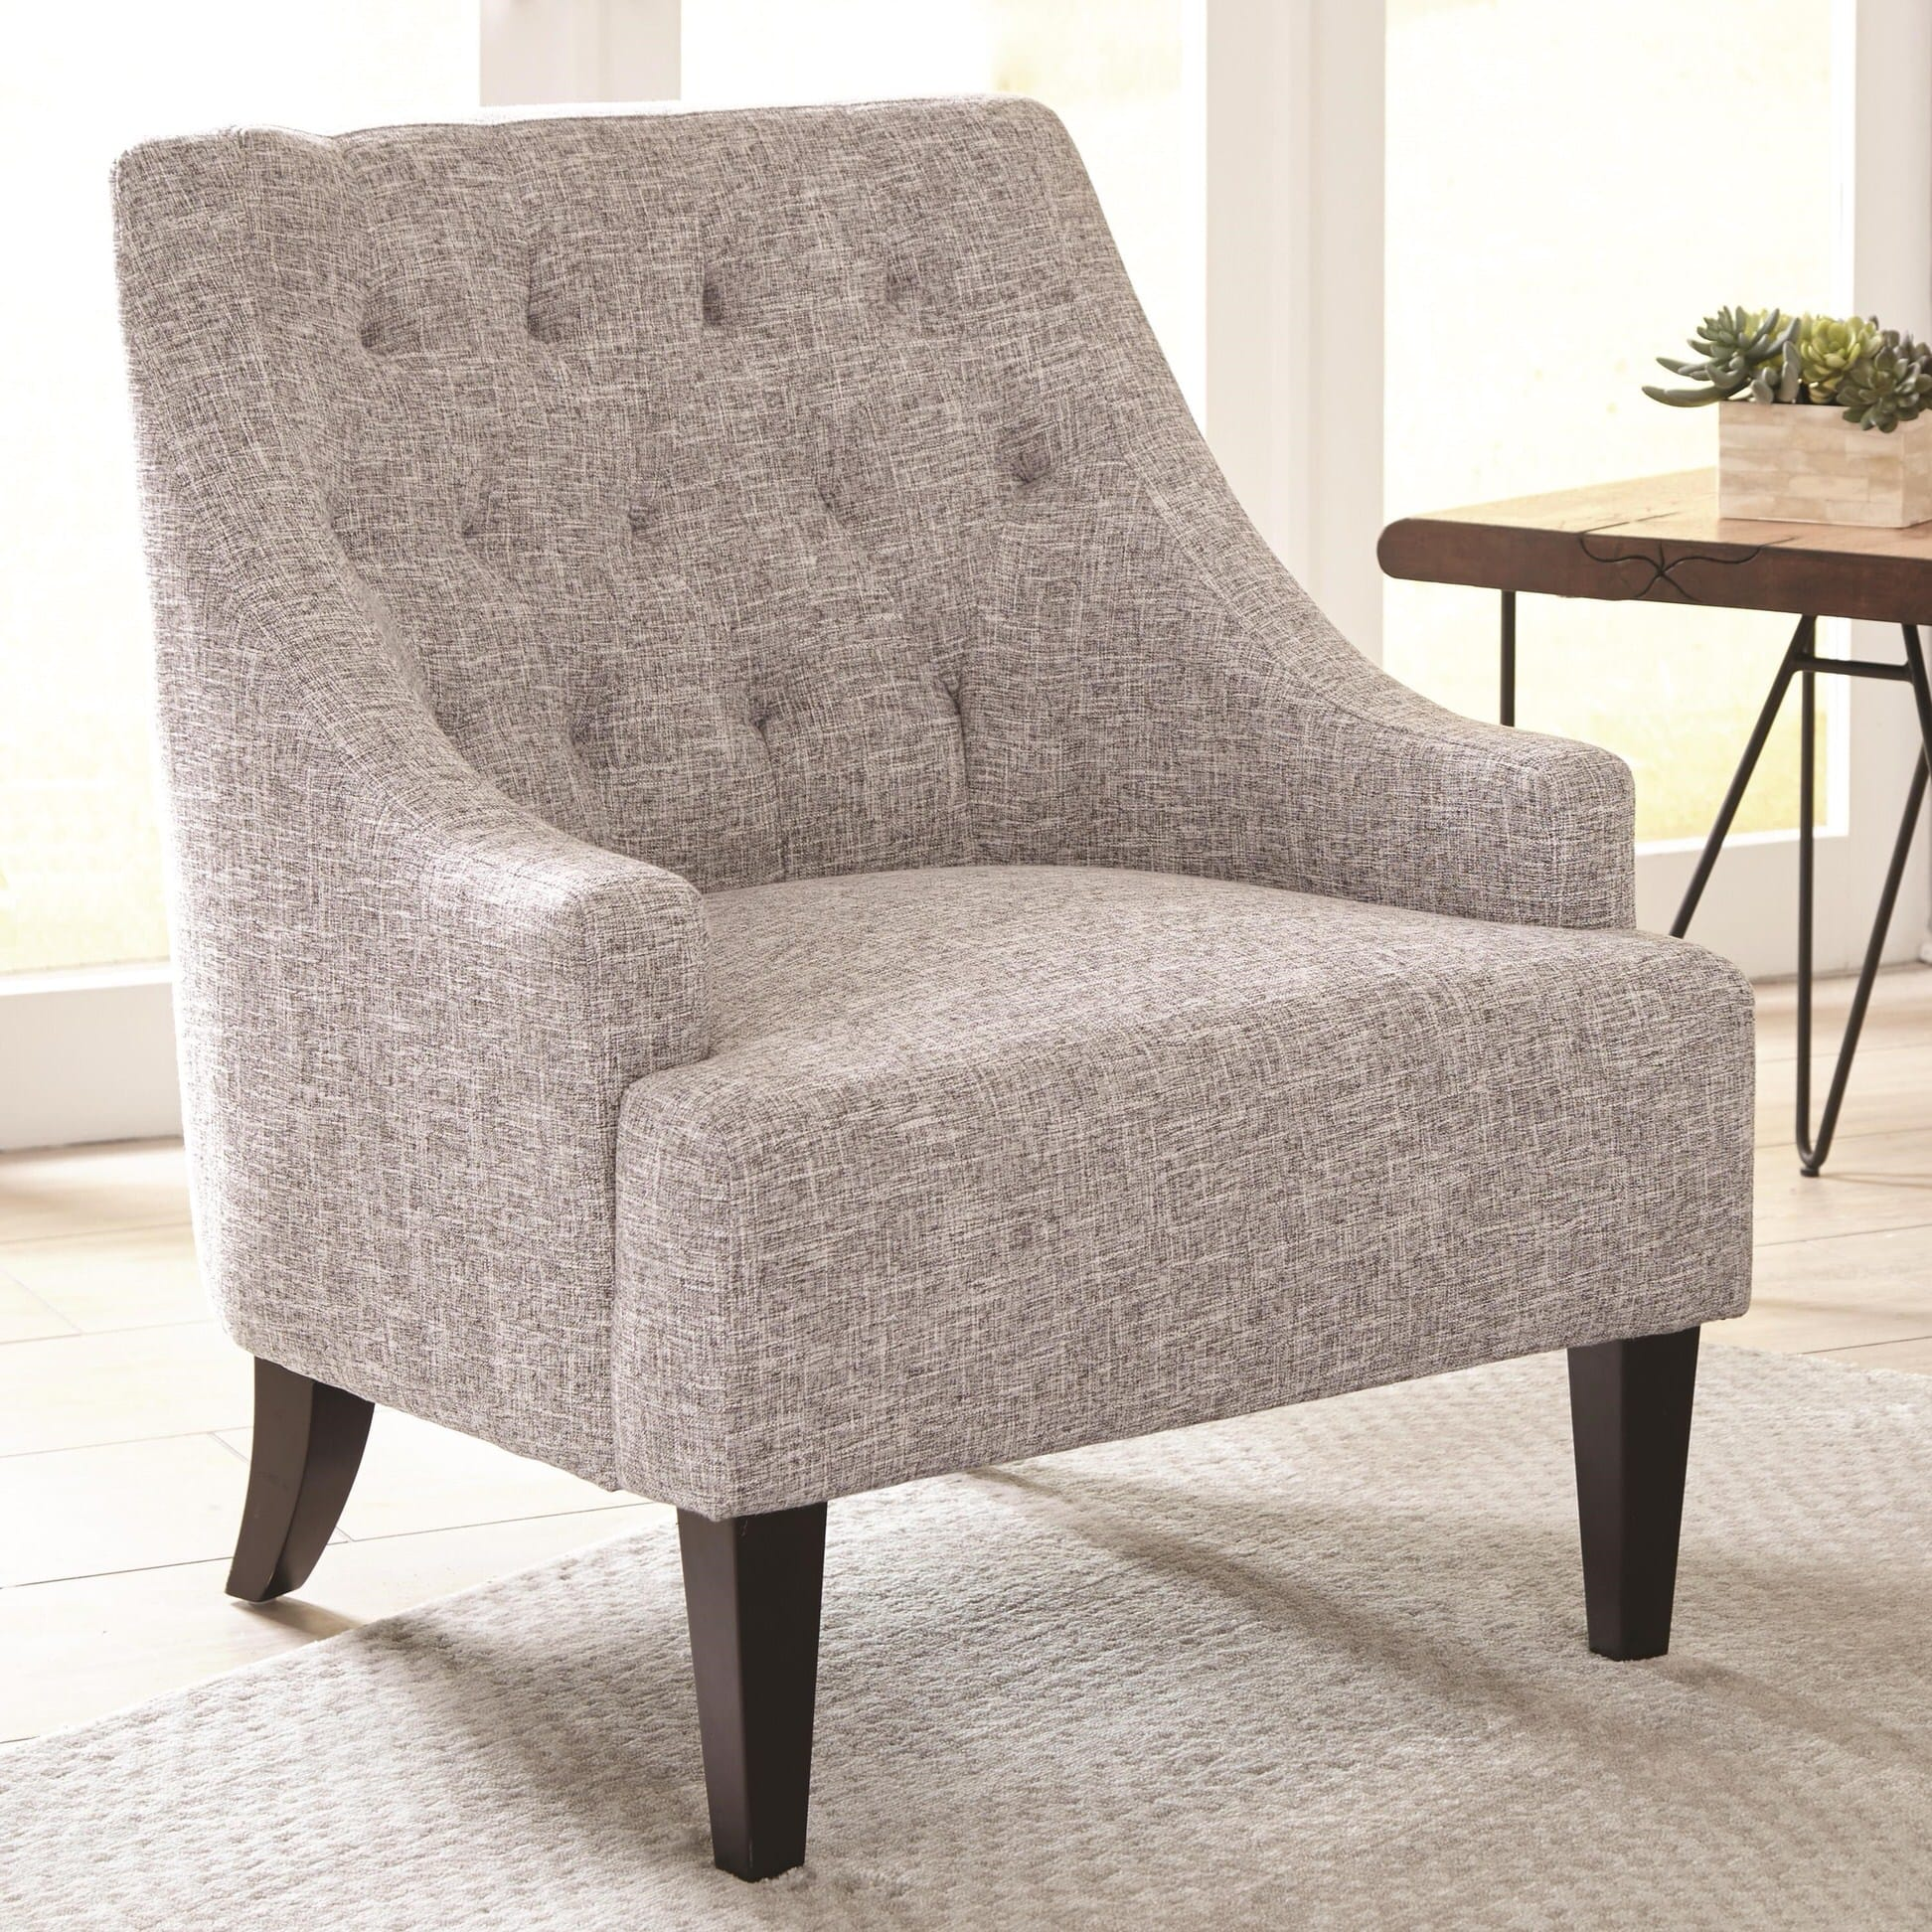 Fabulous 904068 Light Gray Accent Chair By Scott Living Andrewgaddart Wooden Chair Designs For Living Room Andrewgaddartcom